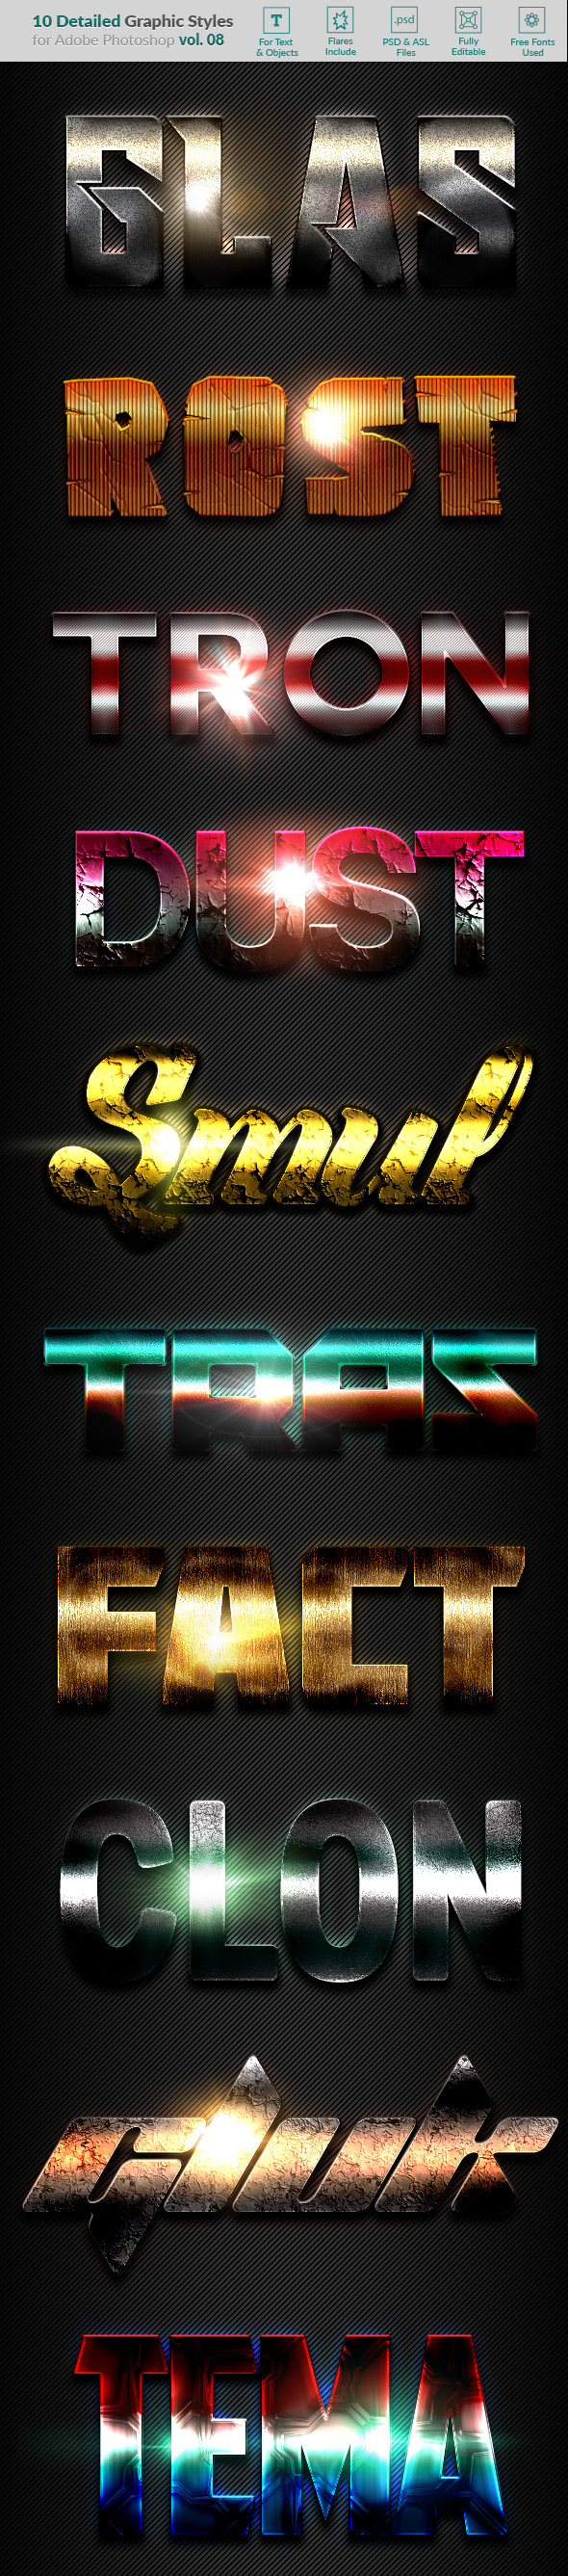 10 Text Effects Vol. 08 - Styles Photoshop